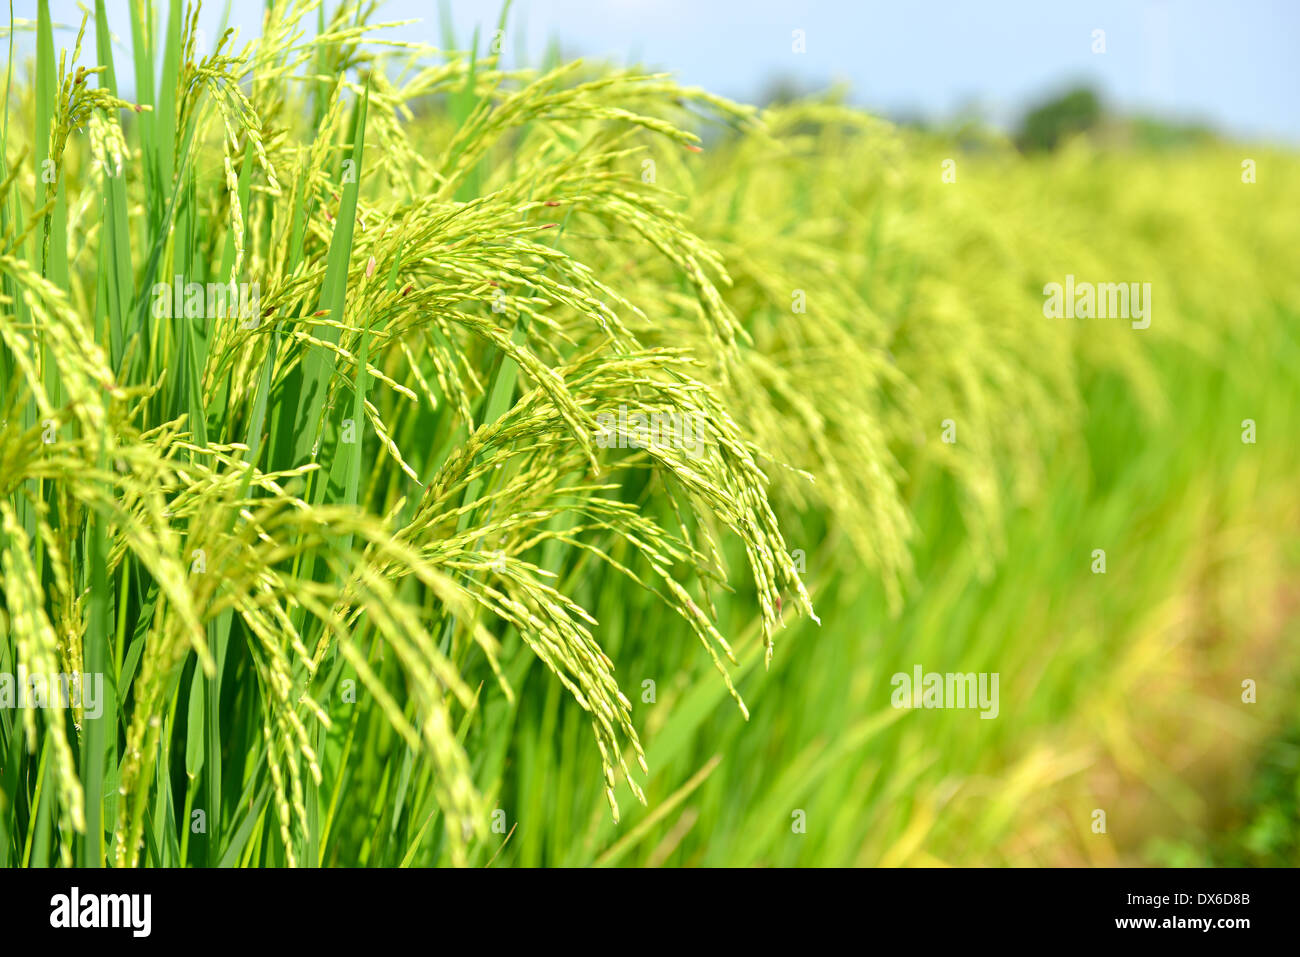 Rice paddy fields, Thailand - Stock Image